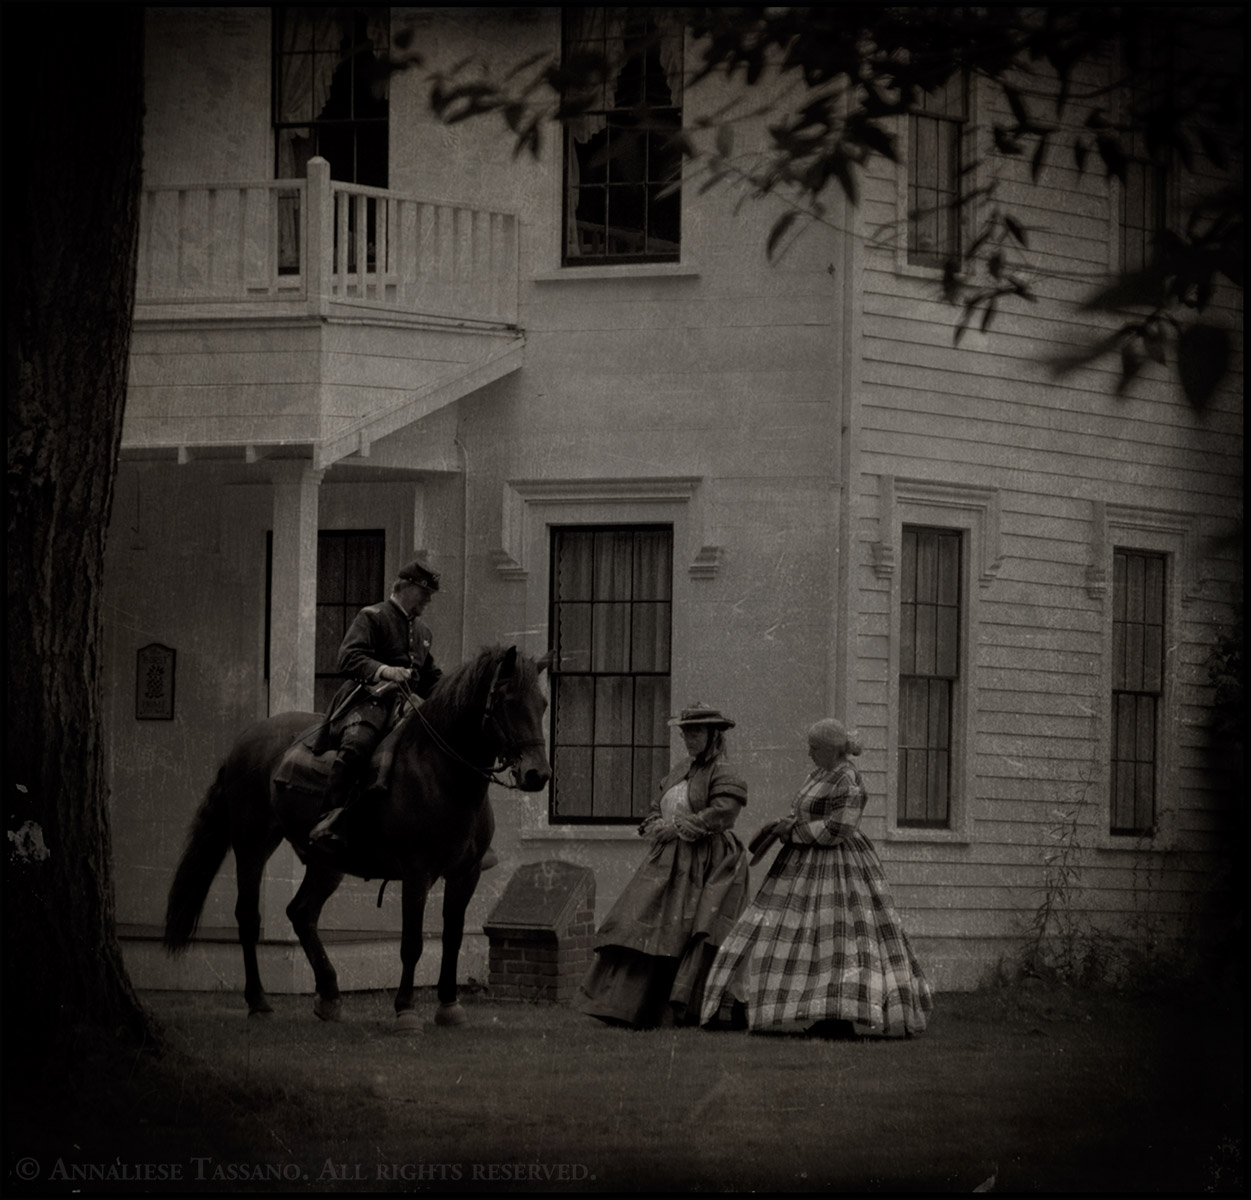 Civil War reenactors in Washington State, one man mounted on his Canadian Warmblood horse in his Union Cavalry uniform and two women standing on the ground in period dresses.